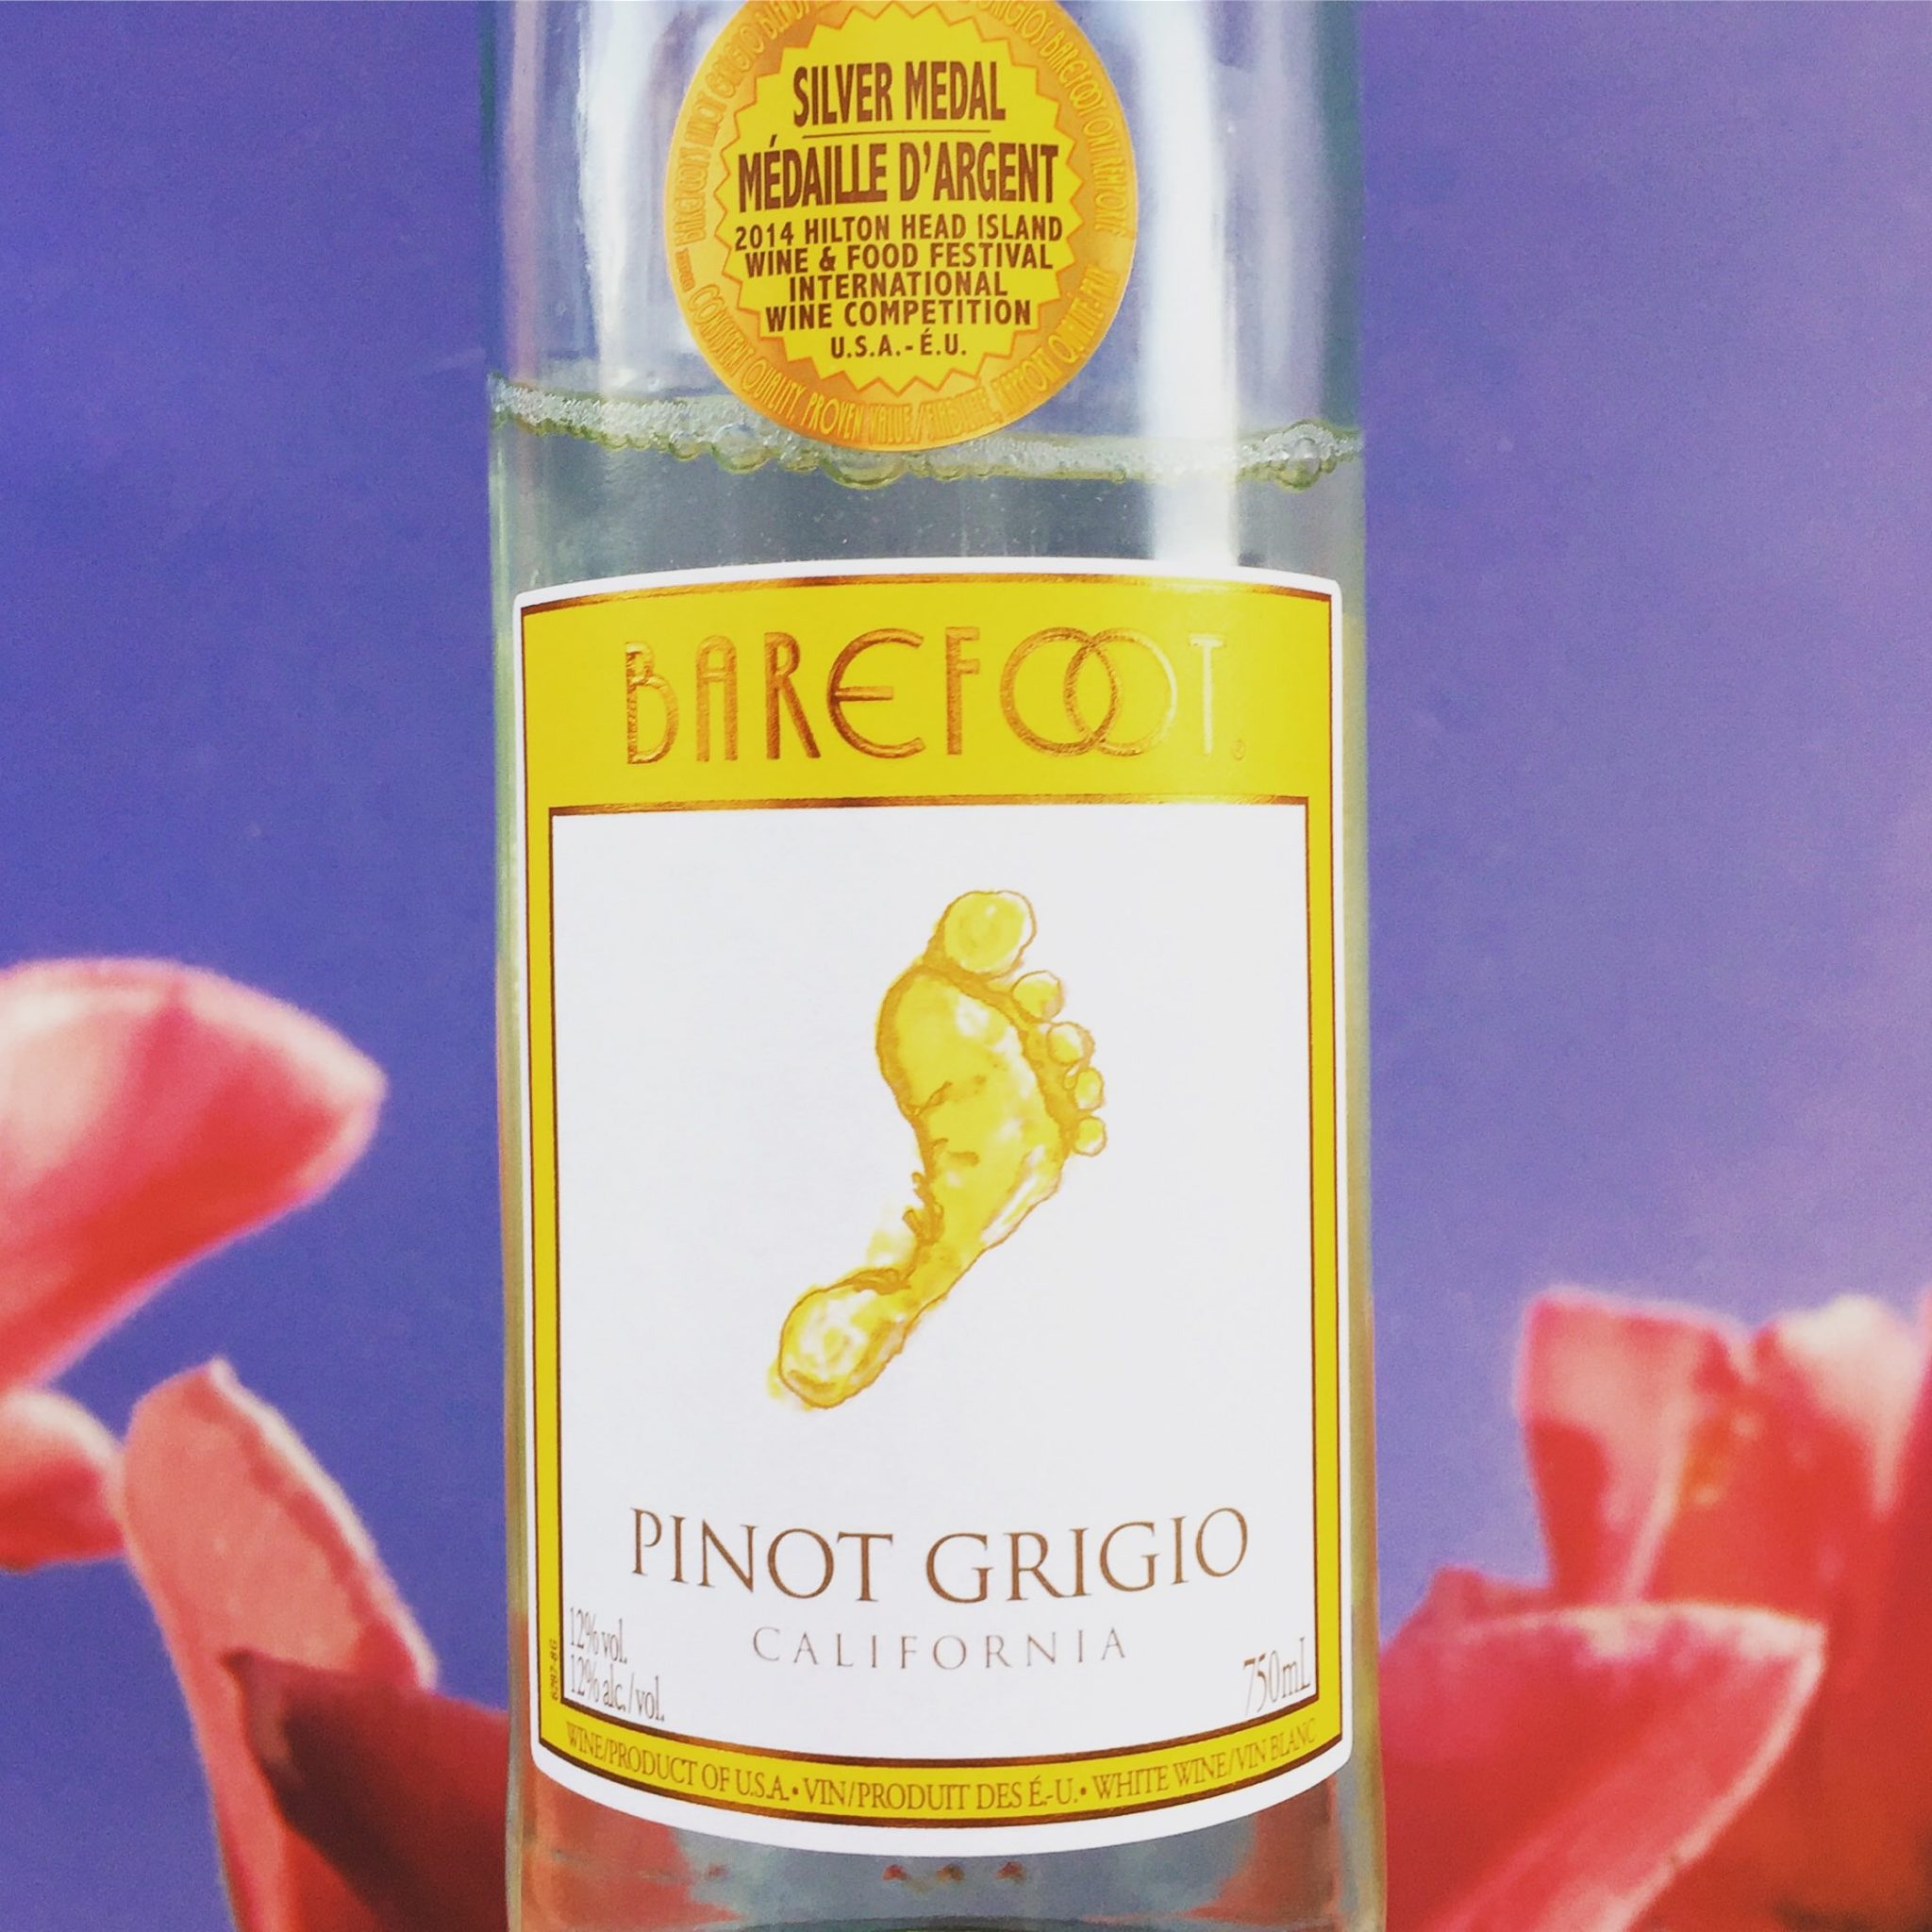 Barefoot, Pinot Grigio Review